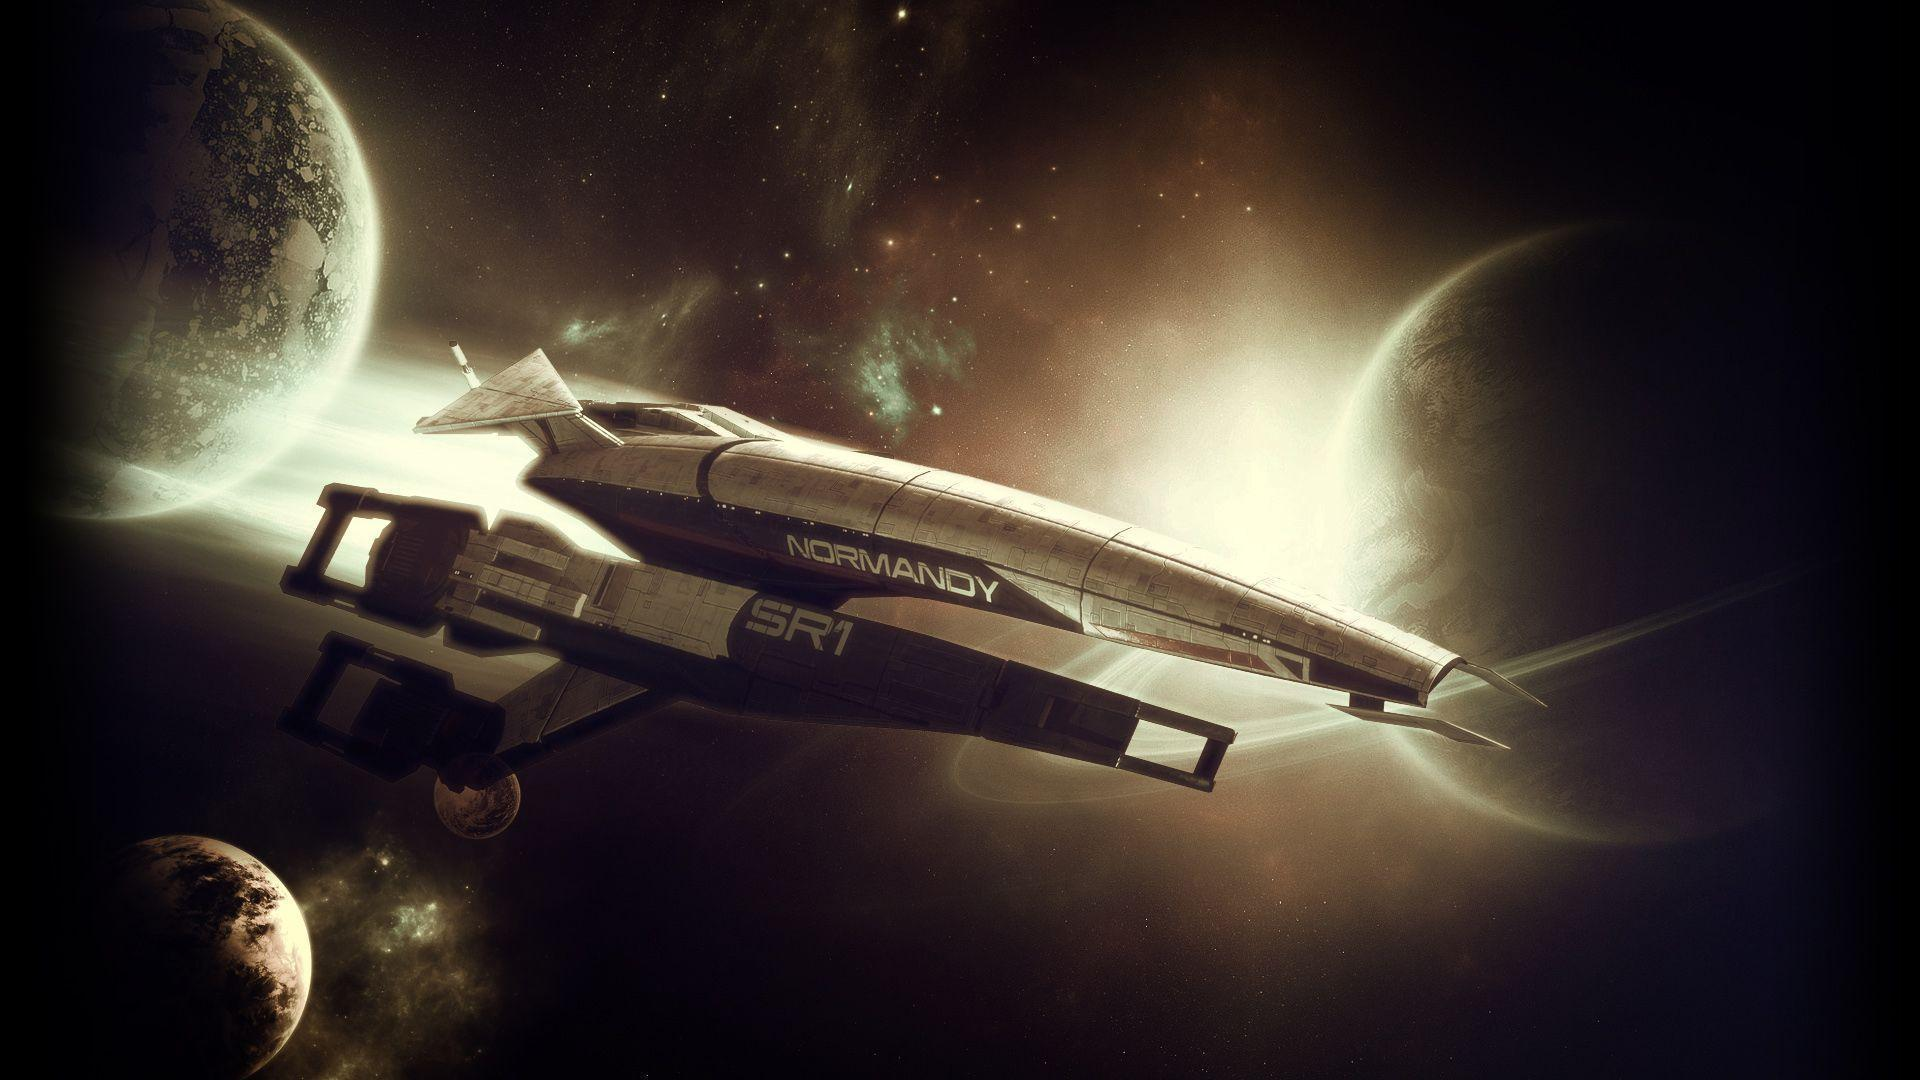 Mass Effect Normandy wallpapers